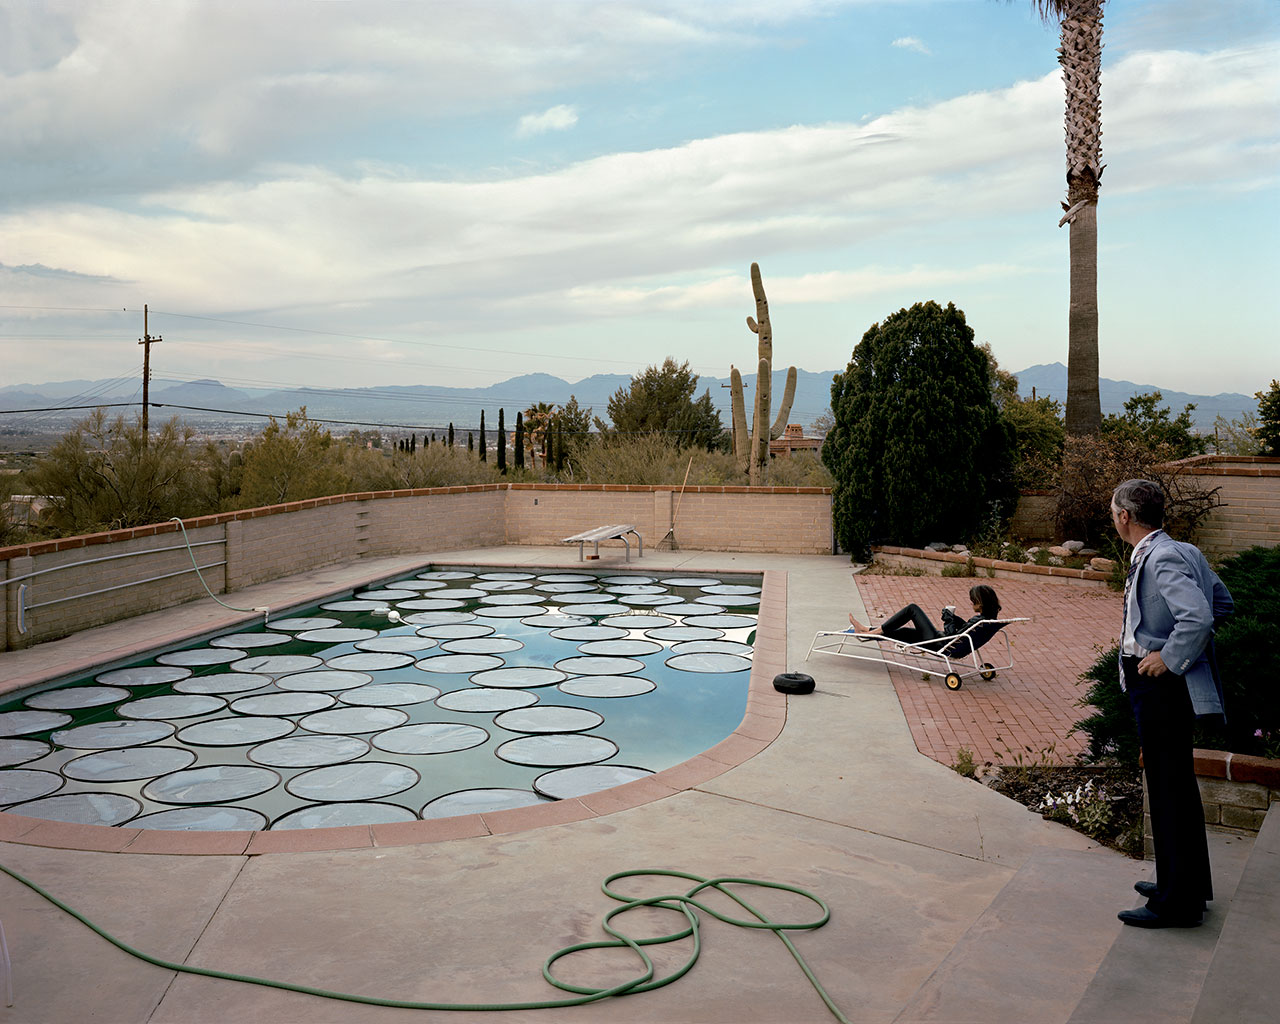 Joel Sternfeld, 'Solar Pool Petals, Tucson, Arizona, April 1979', 1979 (printed 2010). Digital c-print, Edition of 10 + 2 AP, 106.7 x 133.3 cm / Paper 122 x 148.6 cm / Framed 125.9 x 153 x 5.7 cm. Courtesy of the artist and Luhring Augustine, New York.